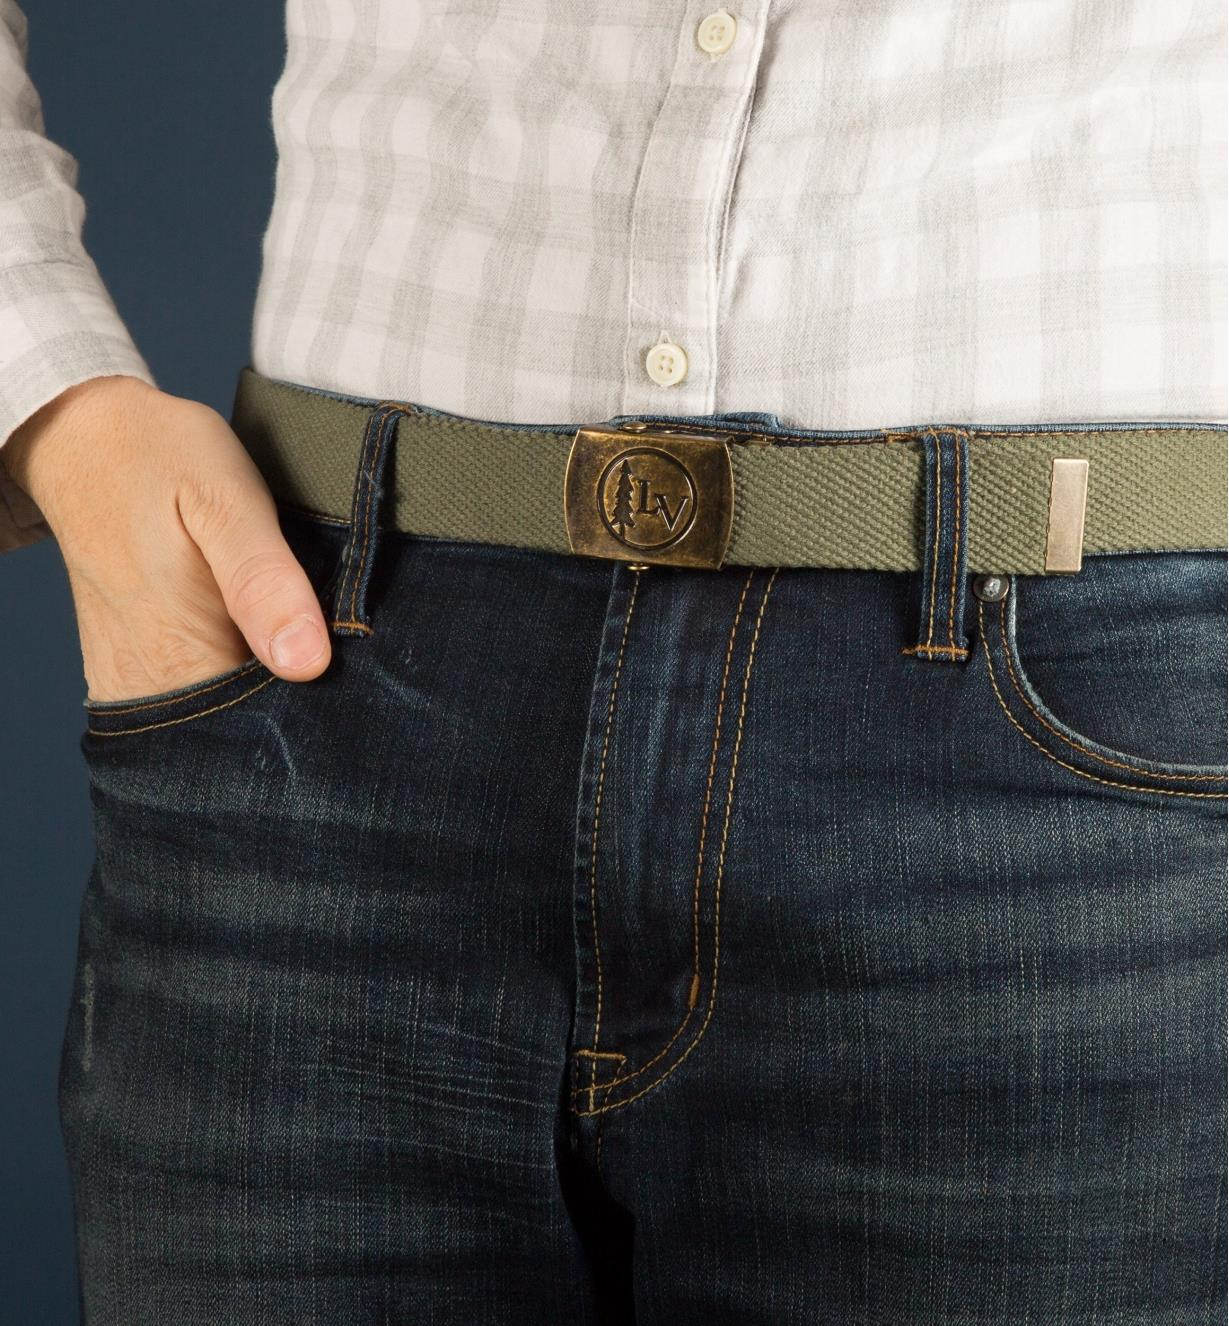 Green Lee Valley Belt worn with a pair of jeans